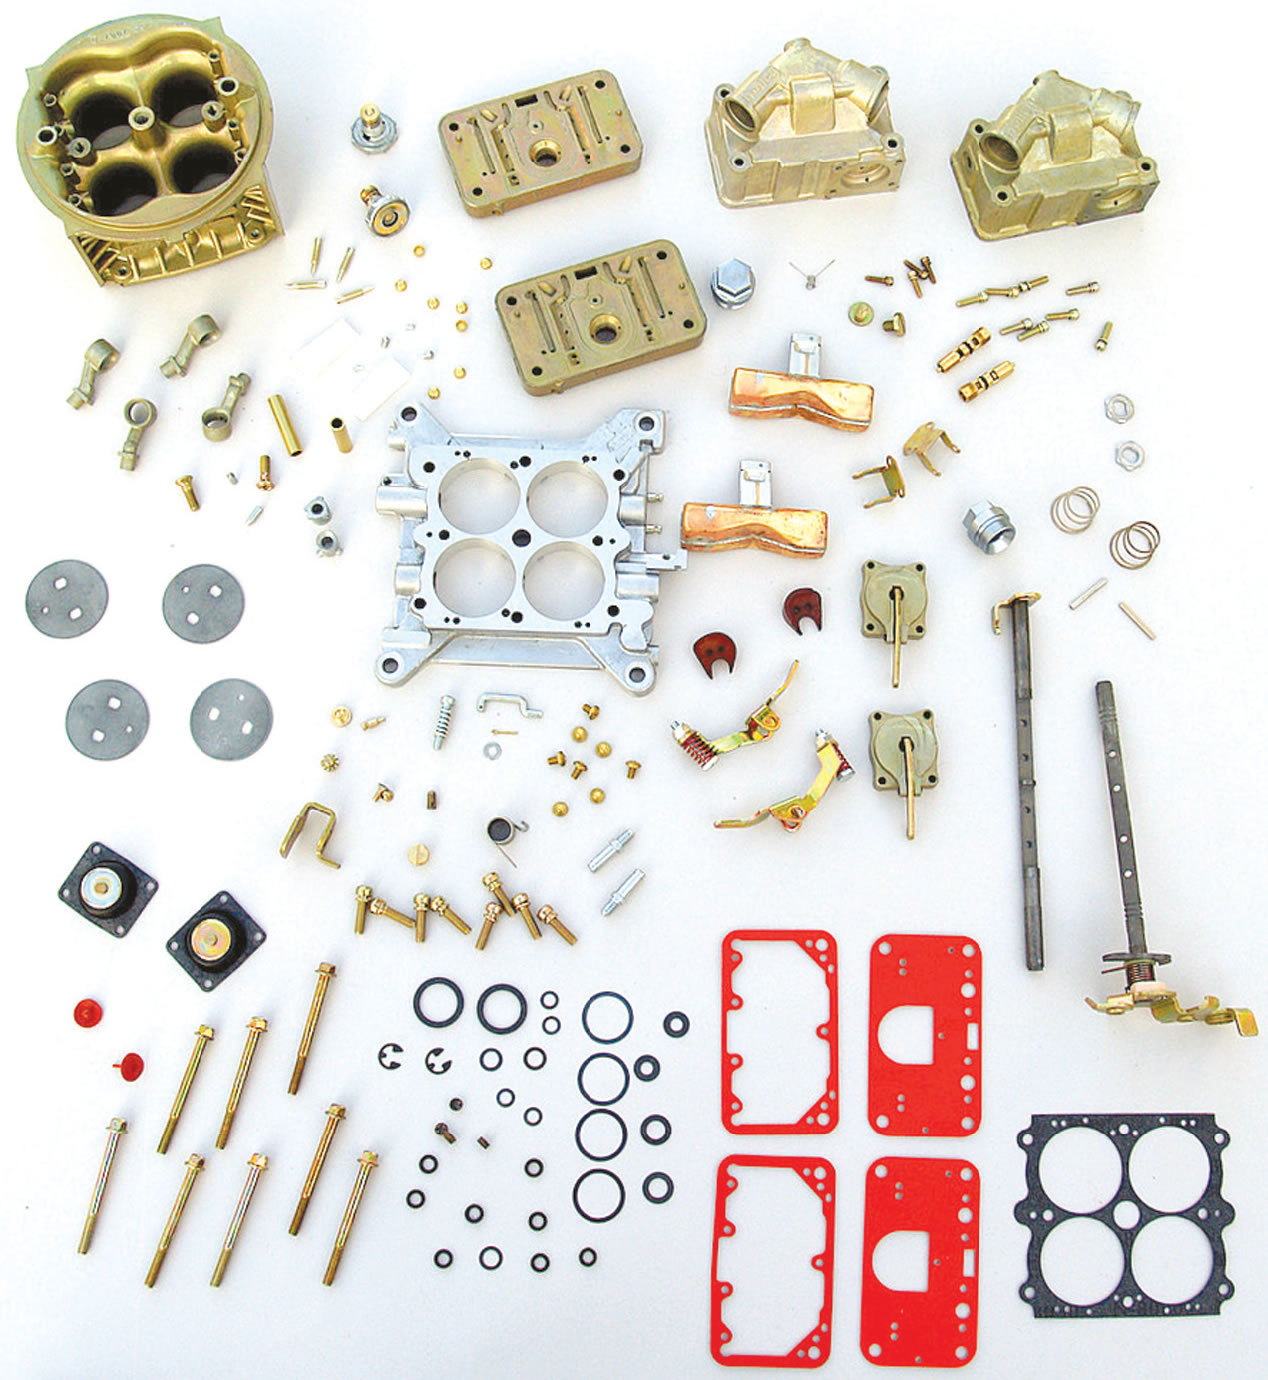 Carburetor parts and fuel lines blp racing products llc carb kit complete unassembled pooptronica Image collections